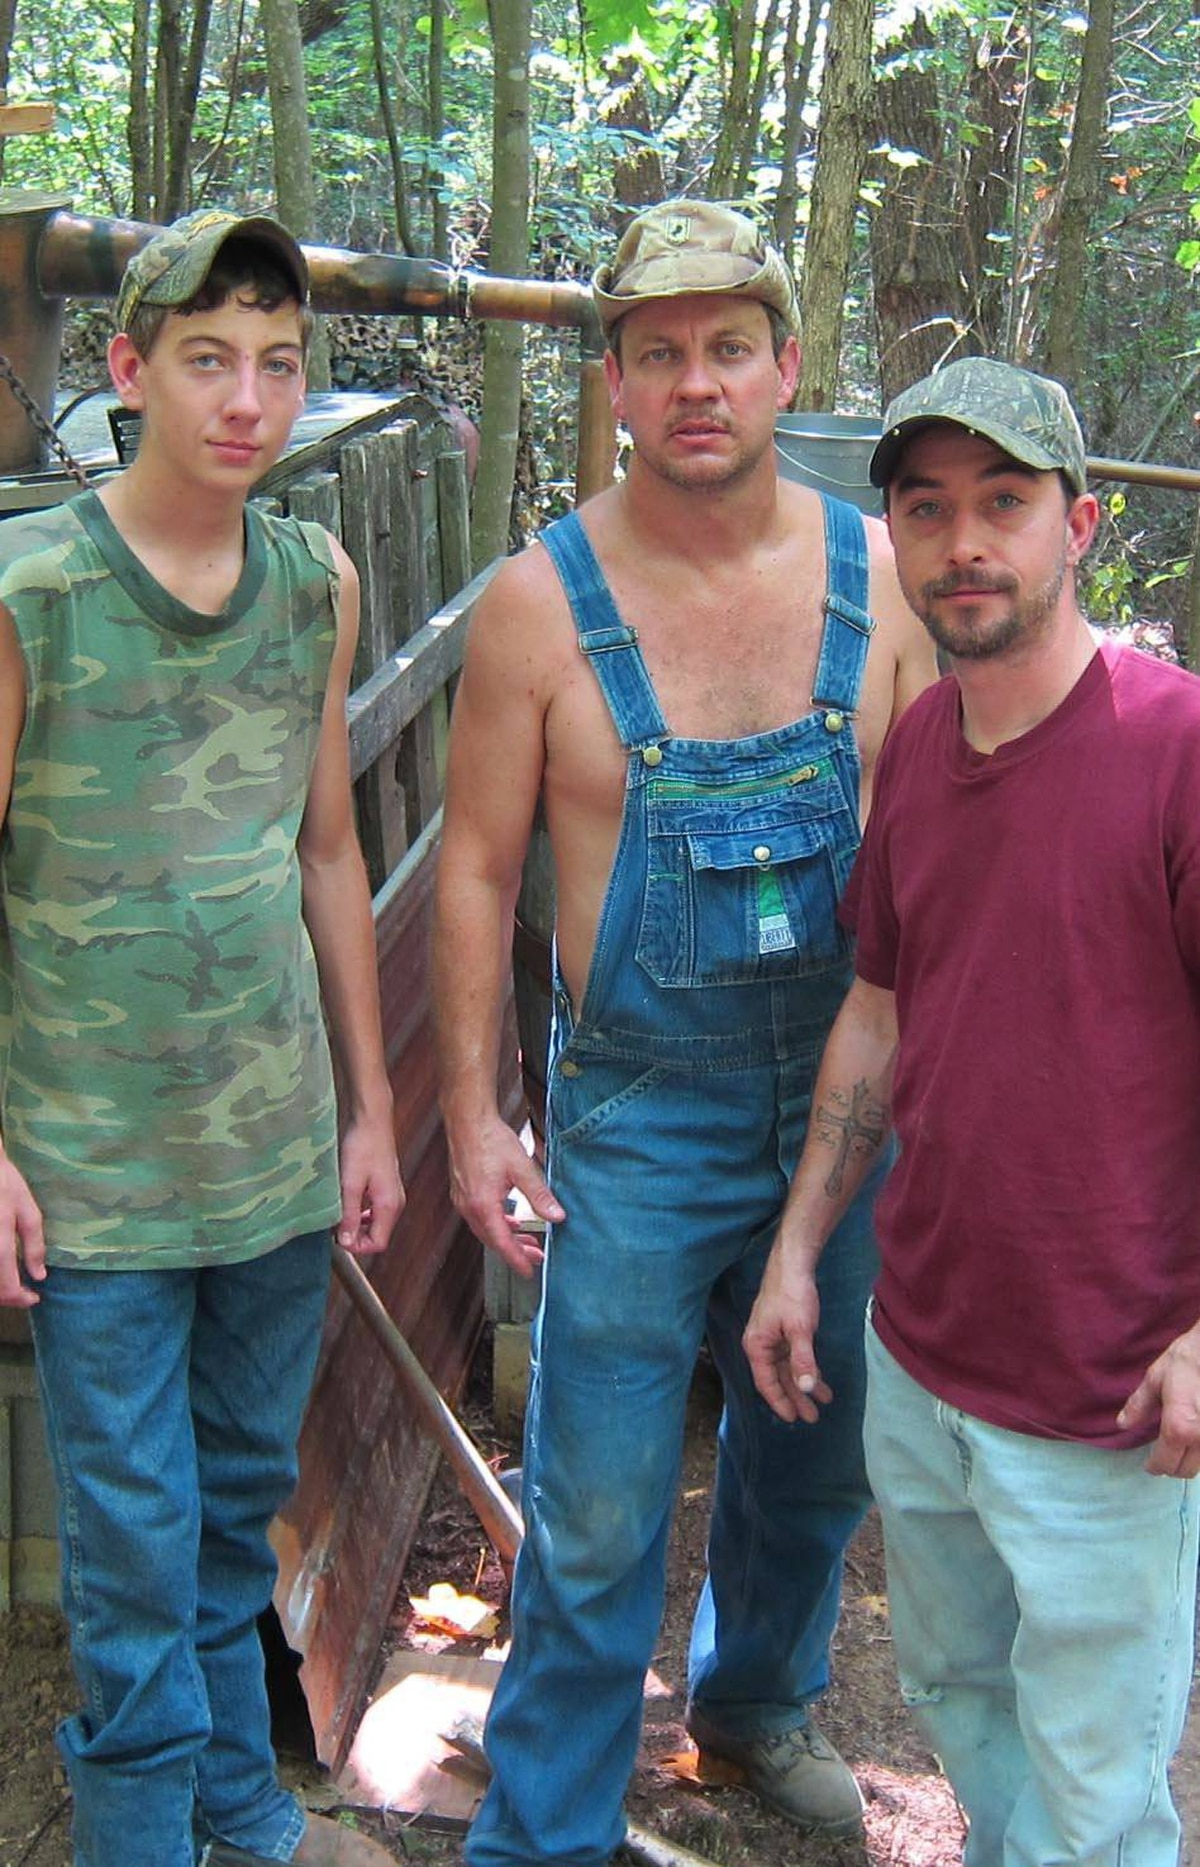 """REALITY Moonshiners Discovery, 9 p.m. ET; 11 p.m. PT Never underestimate the appeal of good ol' boys and illegal activity. Already a hit on the U.S. Discovery Channel, this new series follows a handful of country boys brewing homemade liquor deep in the mountains of rural Virginia. Tonight's opener takes place mid-June at the beginning of the brewing season and introduces viewers to the veteran moonshiner Tim, his son JT and their partner, known only as """"Tickle,"""" as they roam the backwoods for a discreet location to set up their still. At the same time, a separate camera team follows the government agent Jesse, whose job is to bring down the moonshiners, even though he displays grudging respect for their ingenuity. Watch to see how far reality TV has come."""